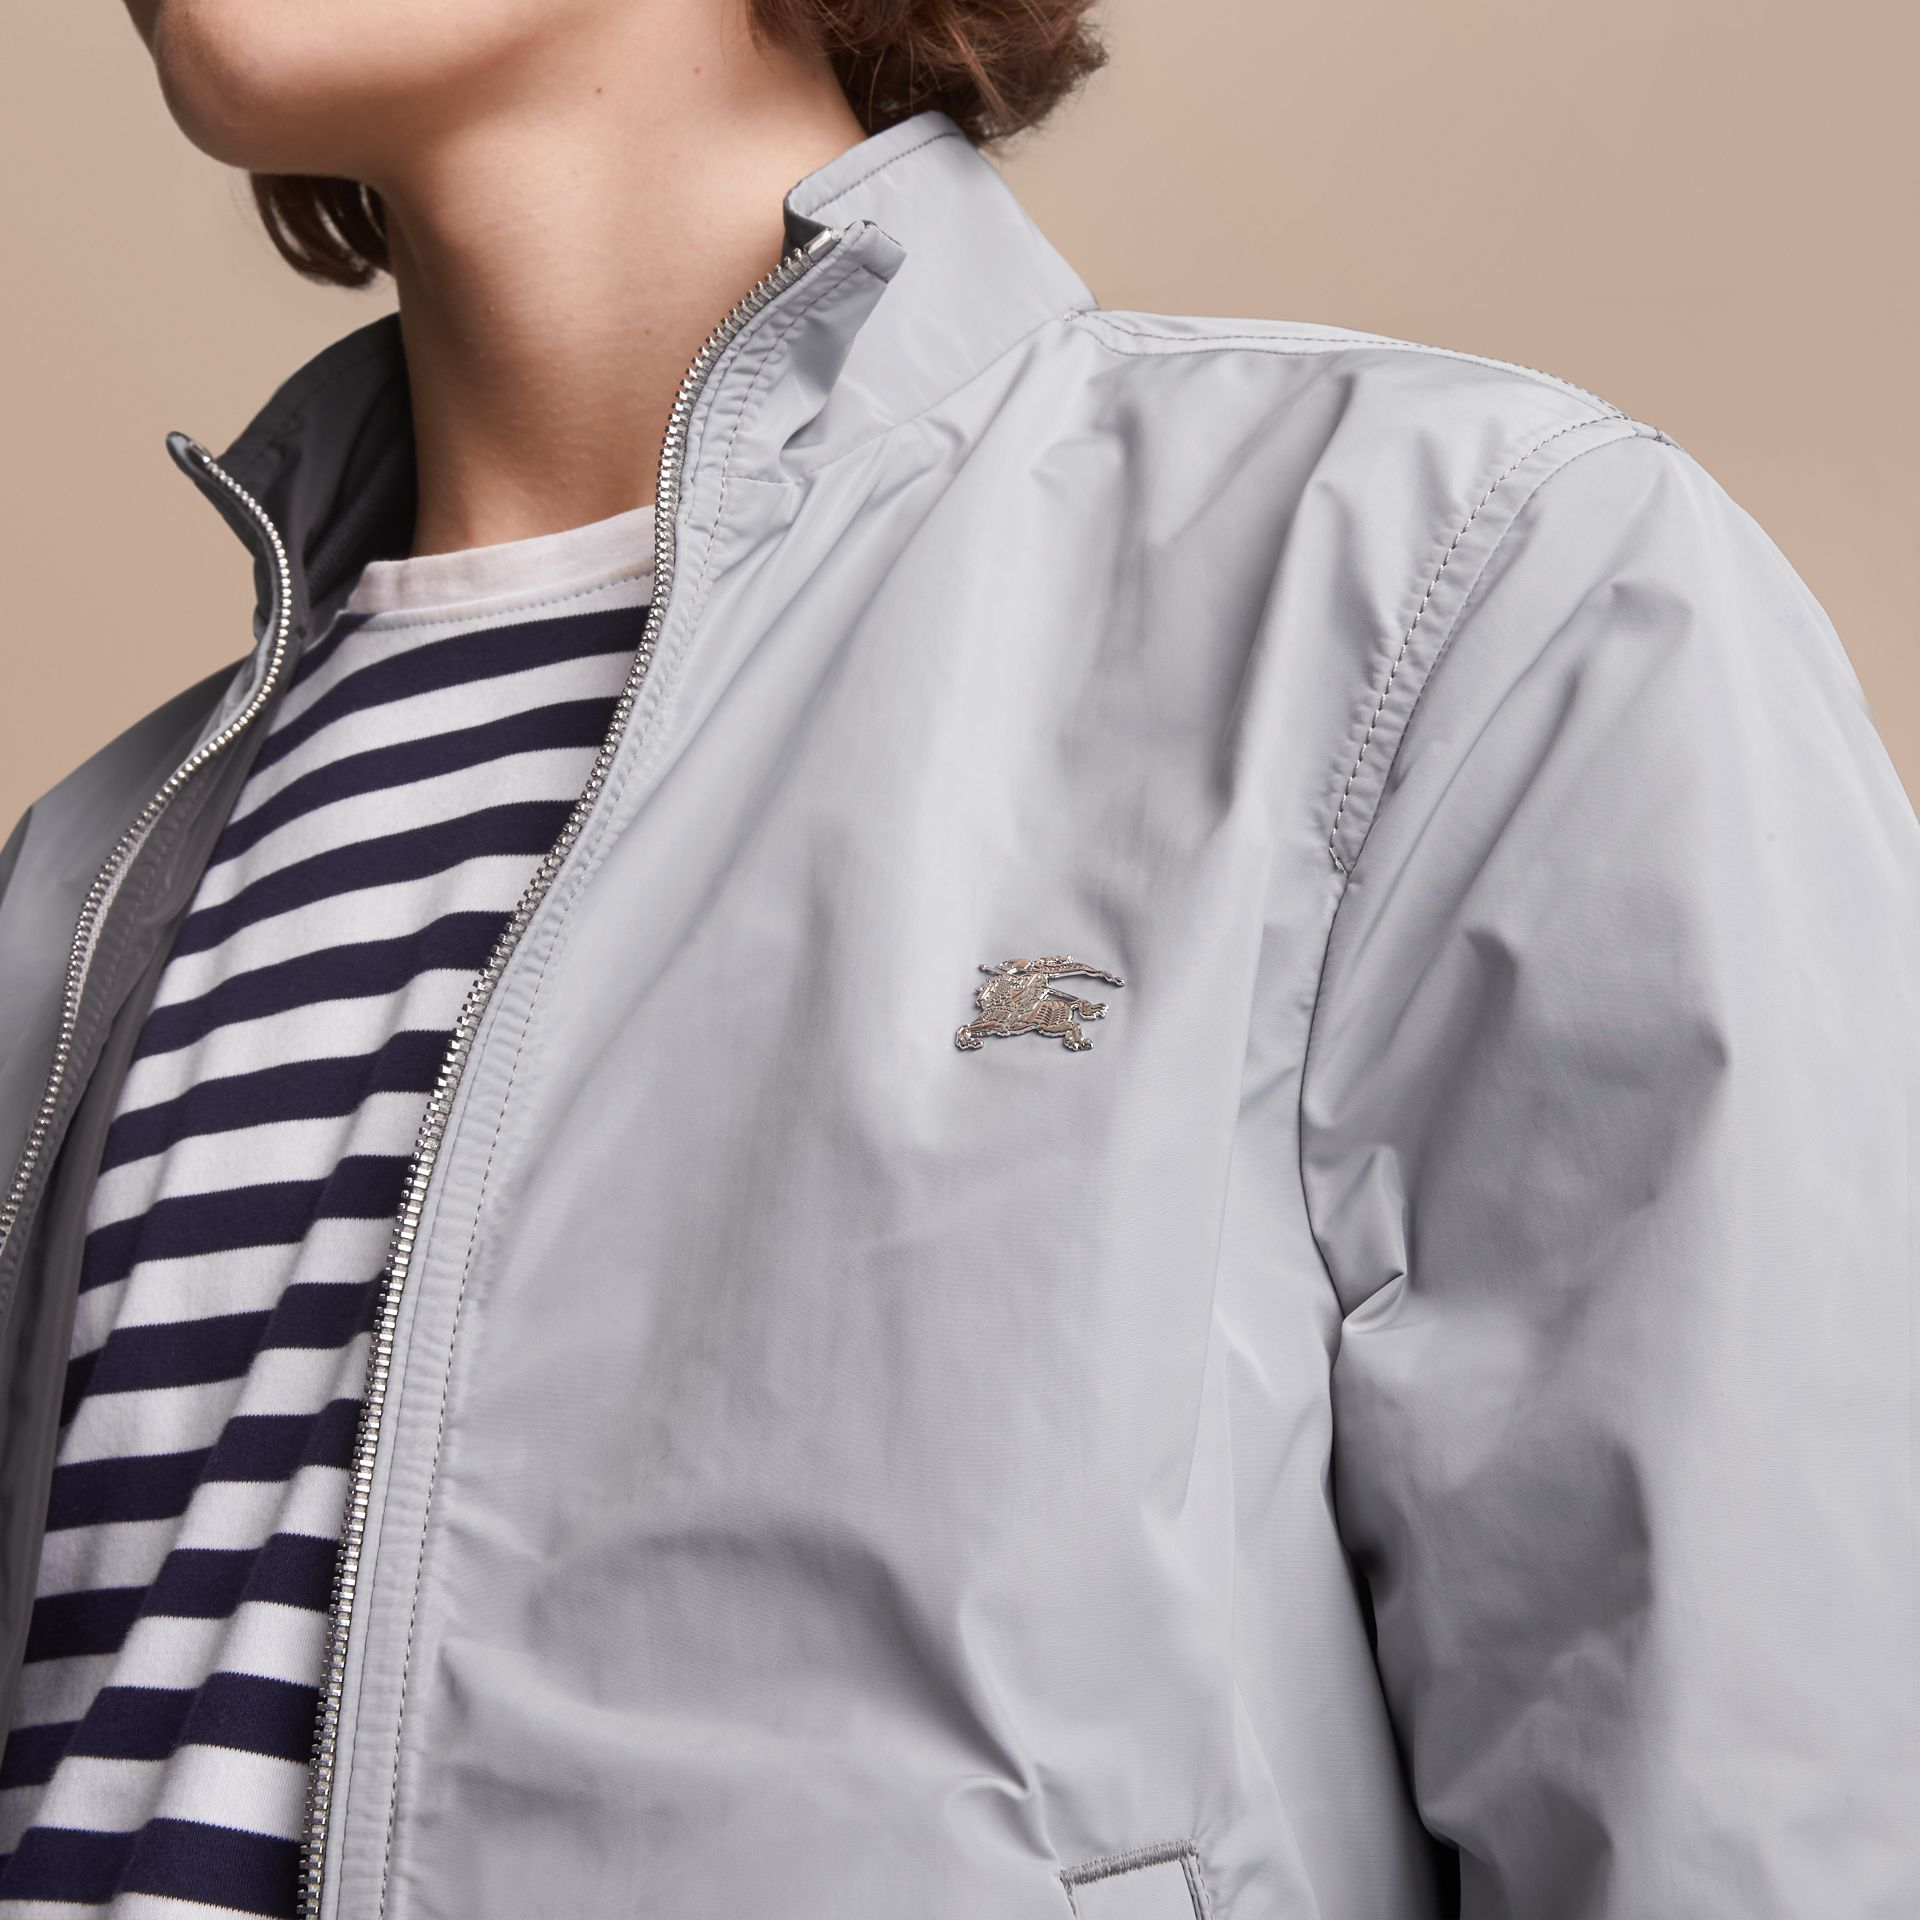 Lightweight Technical Jacket in Light Grey - Men | Burberry - gallery image 5